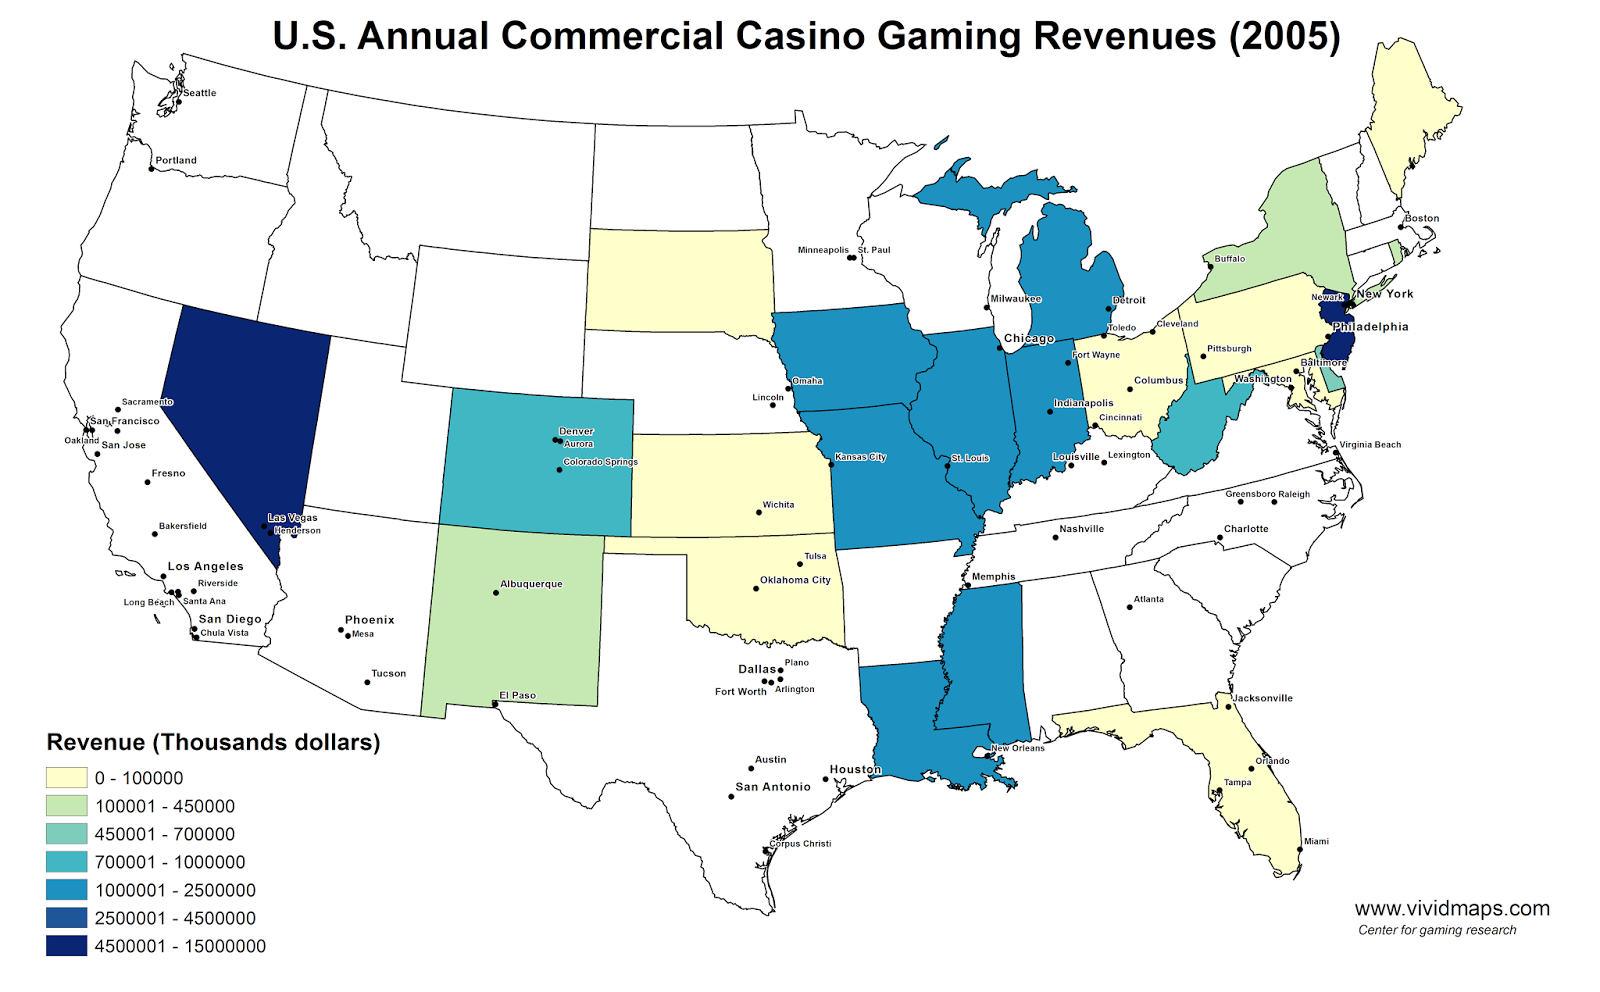 U.S. Annual Commercial Casino Gaming Revenues (2005)